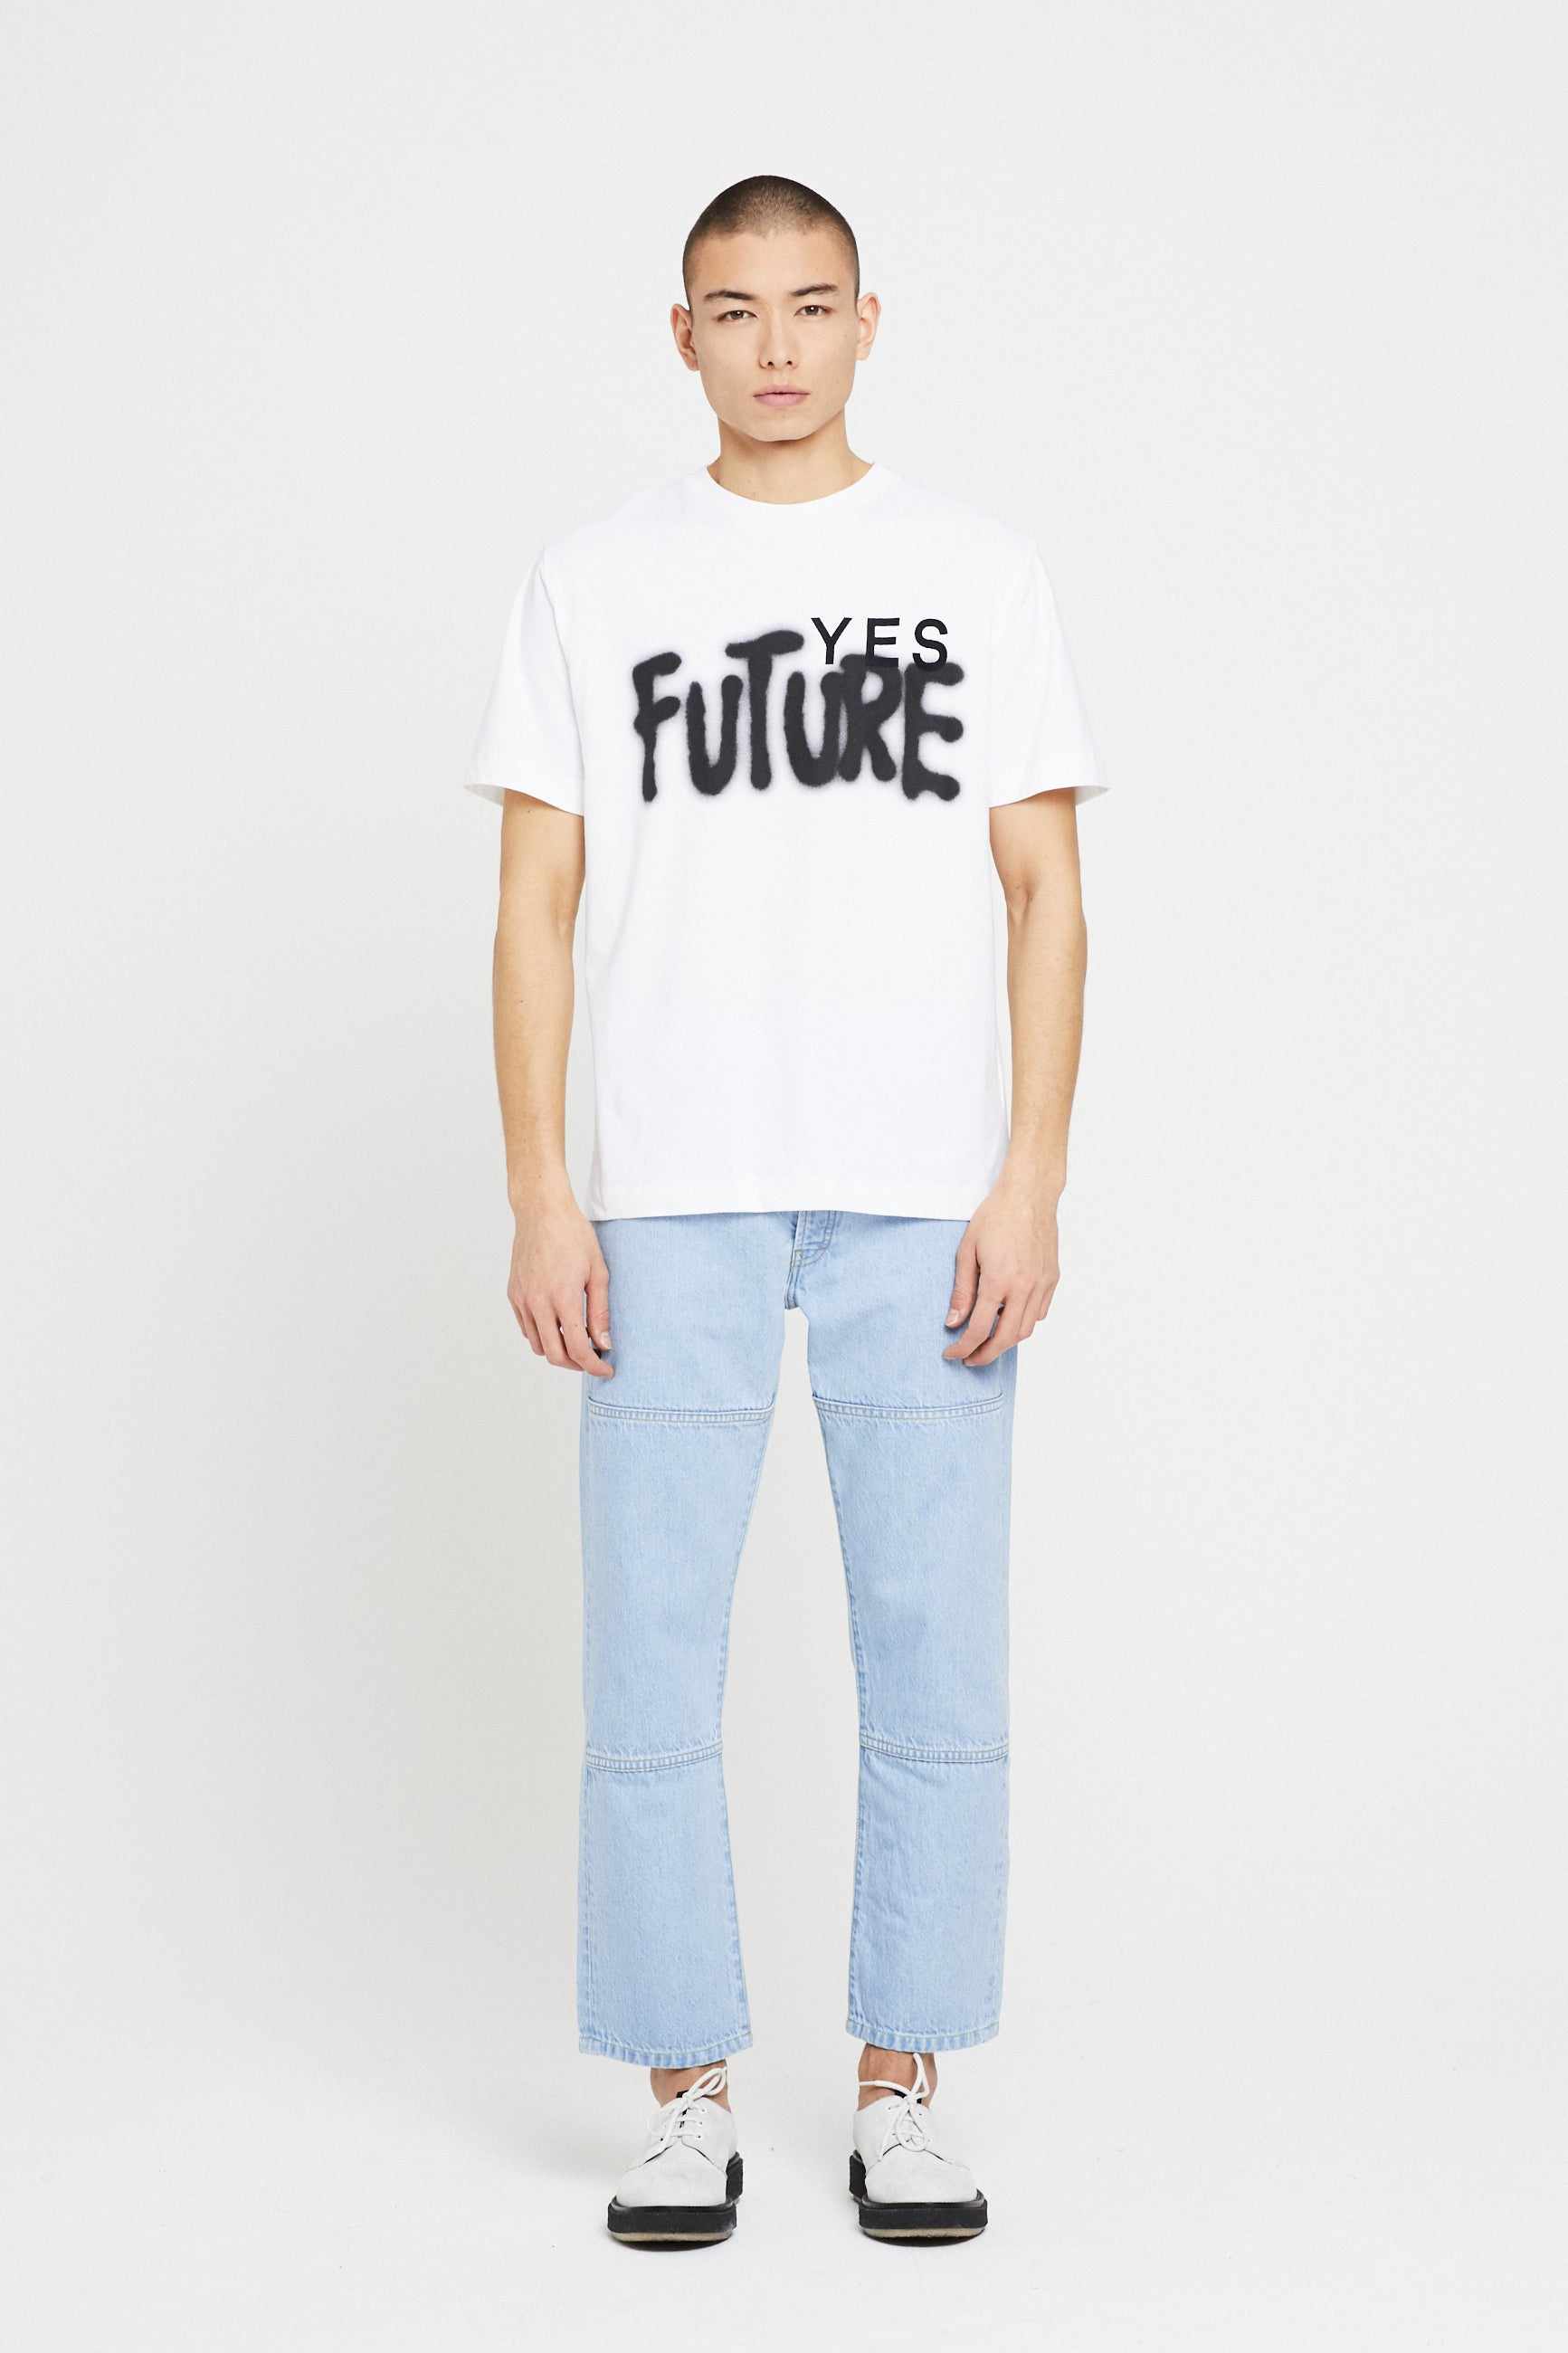 Études Wonder Yes Future White T-Shirt 1